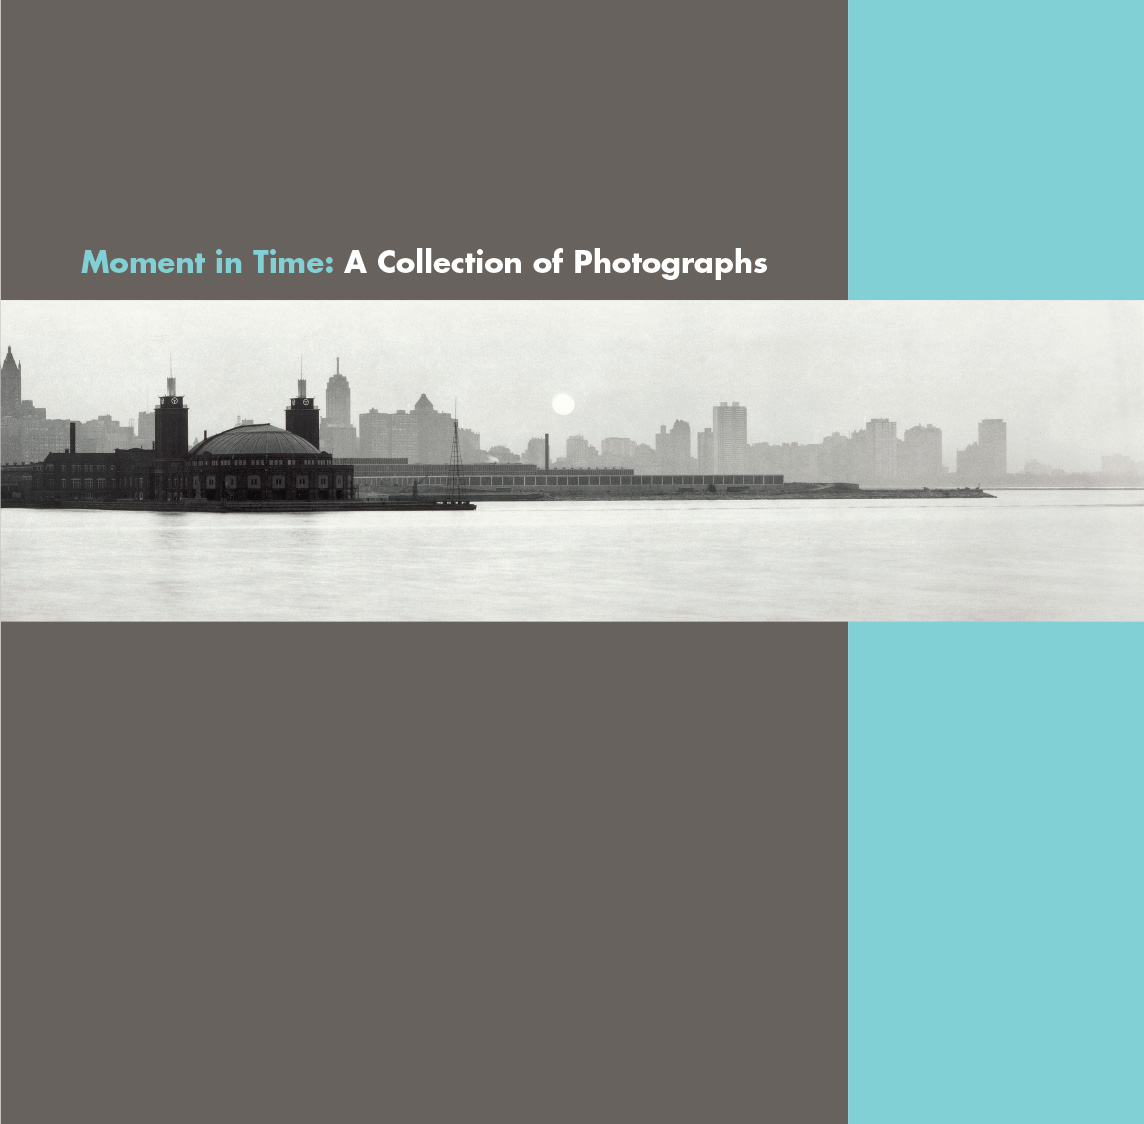 Moment in Time: A Collection of Photograps